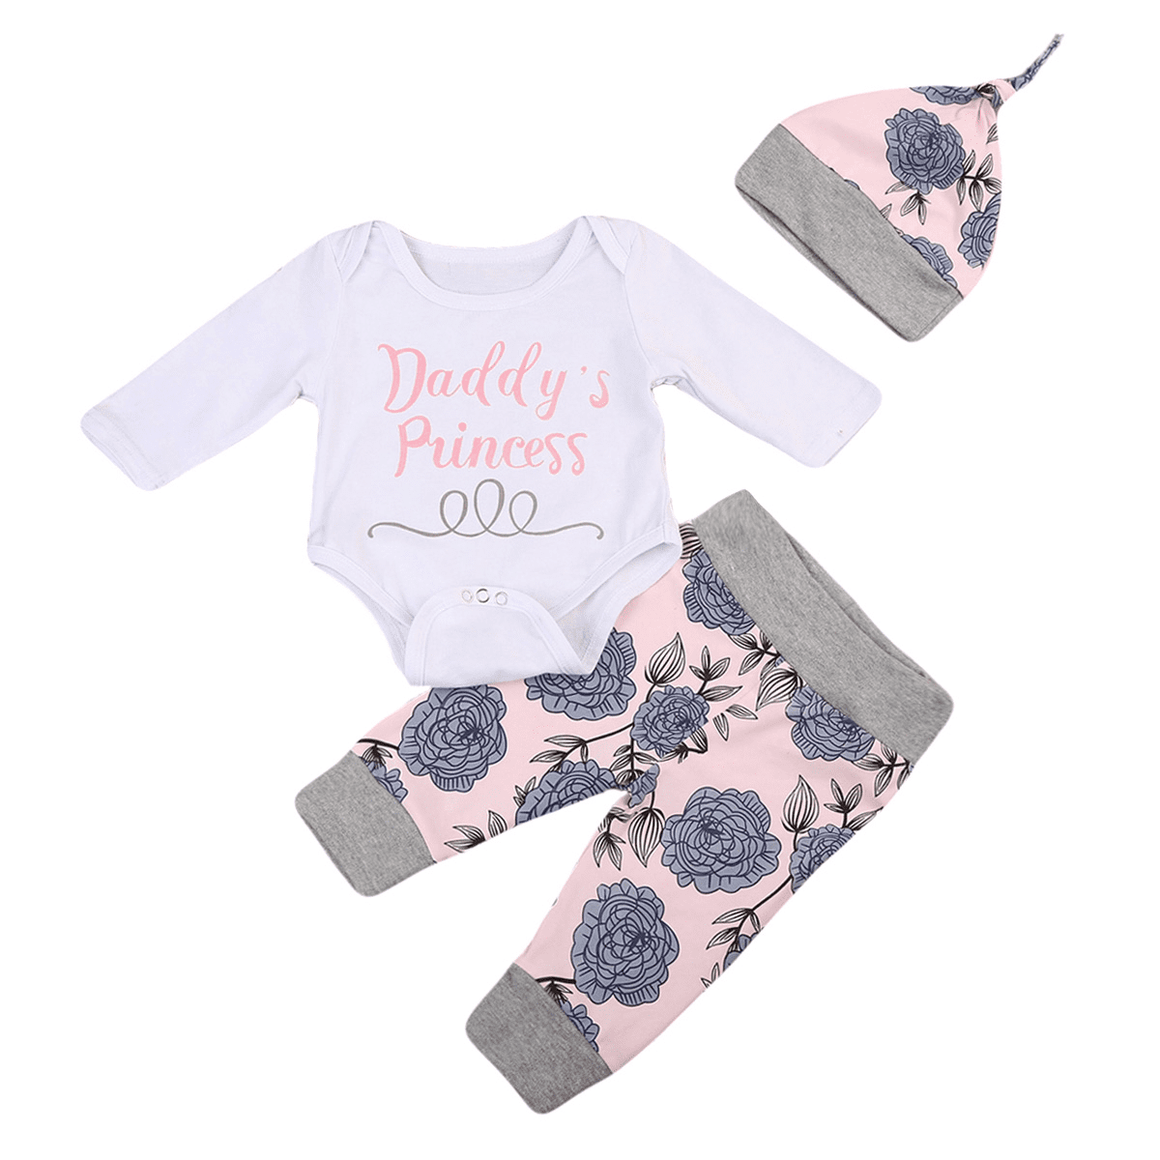 Daddy's Princess Floral Set